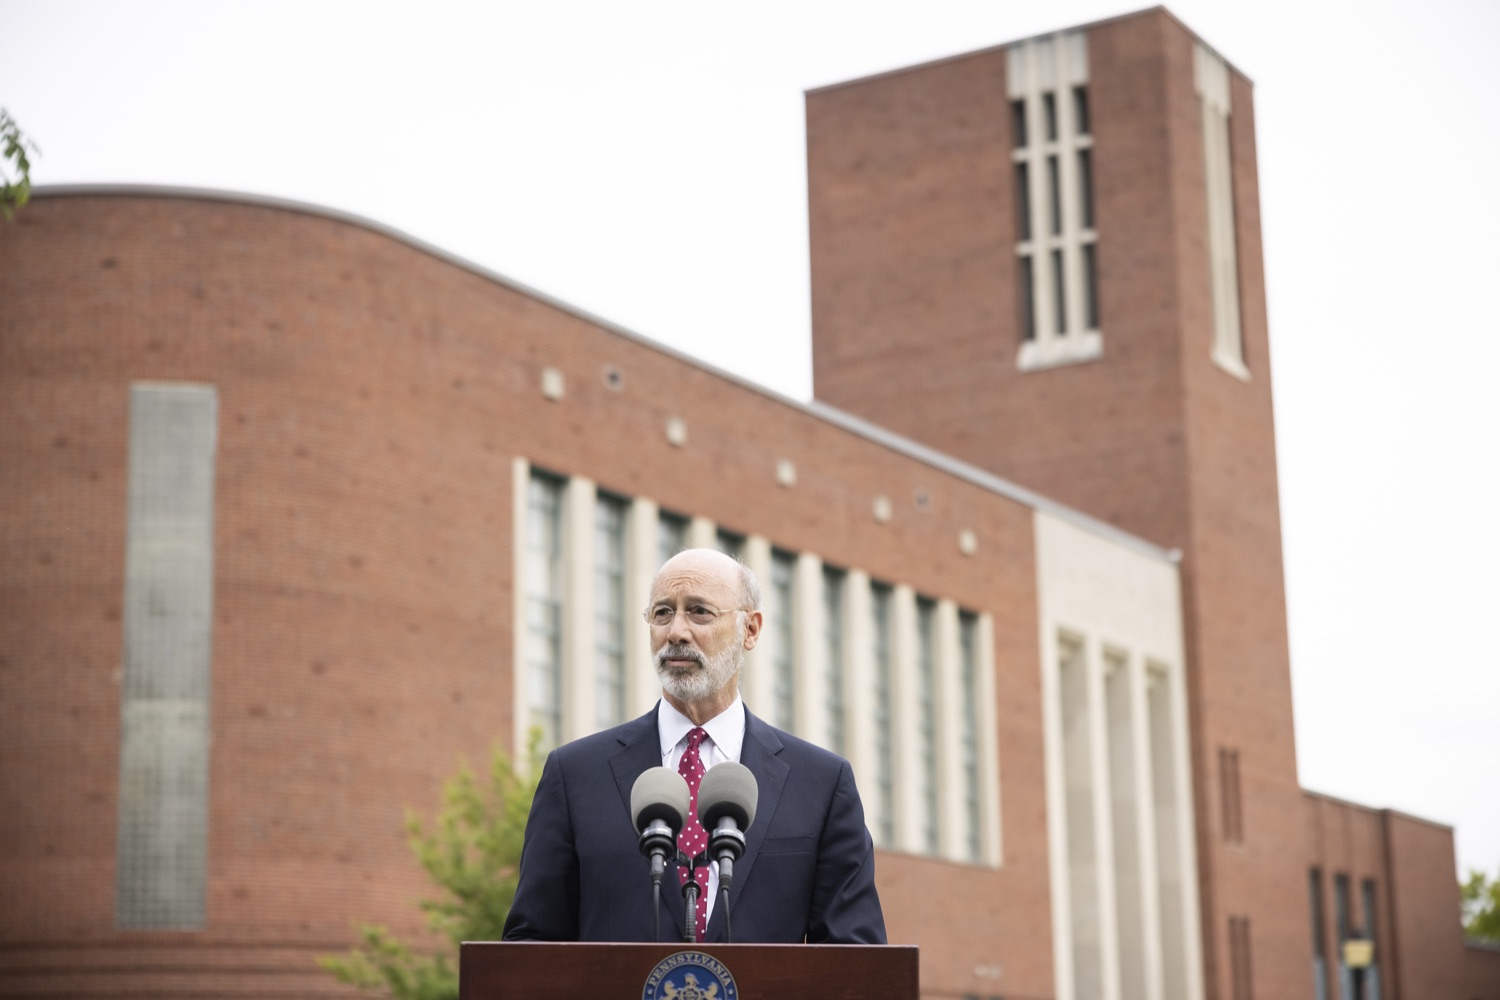 """<a href=""""https://filesource.wostreaming.net/commonwealthofpa/photo/18796_gov_charterSchool_dz_020.jpg"""" target=""""_blank"""">⇣Download Photo<br></a>Pennsylvania Governor Tom Wolf speaking with the press.  With overwhelming support among school districts for his charter school accountability plan, Governor Tom Wolf visited J.P. McCaskey High School in Lancaster today to discuss his bipartisan proposal that saves an estimated $395 million a year. Lancaster, PA  June 01, 2021"""